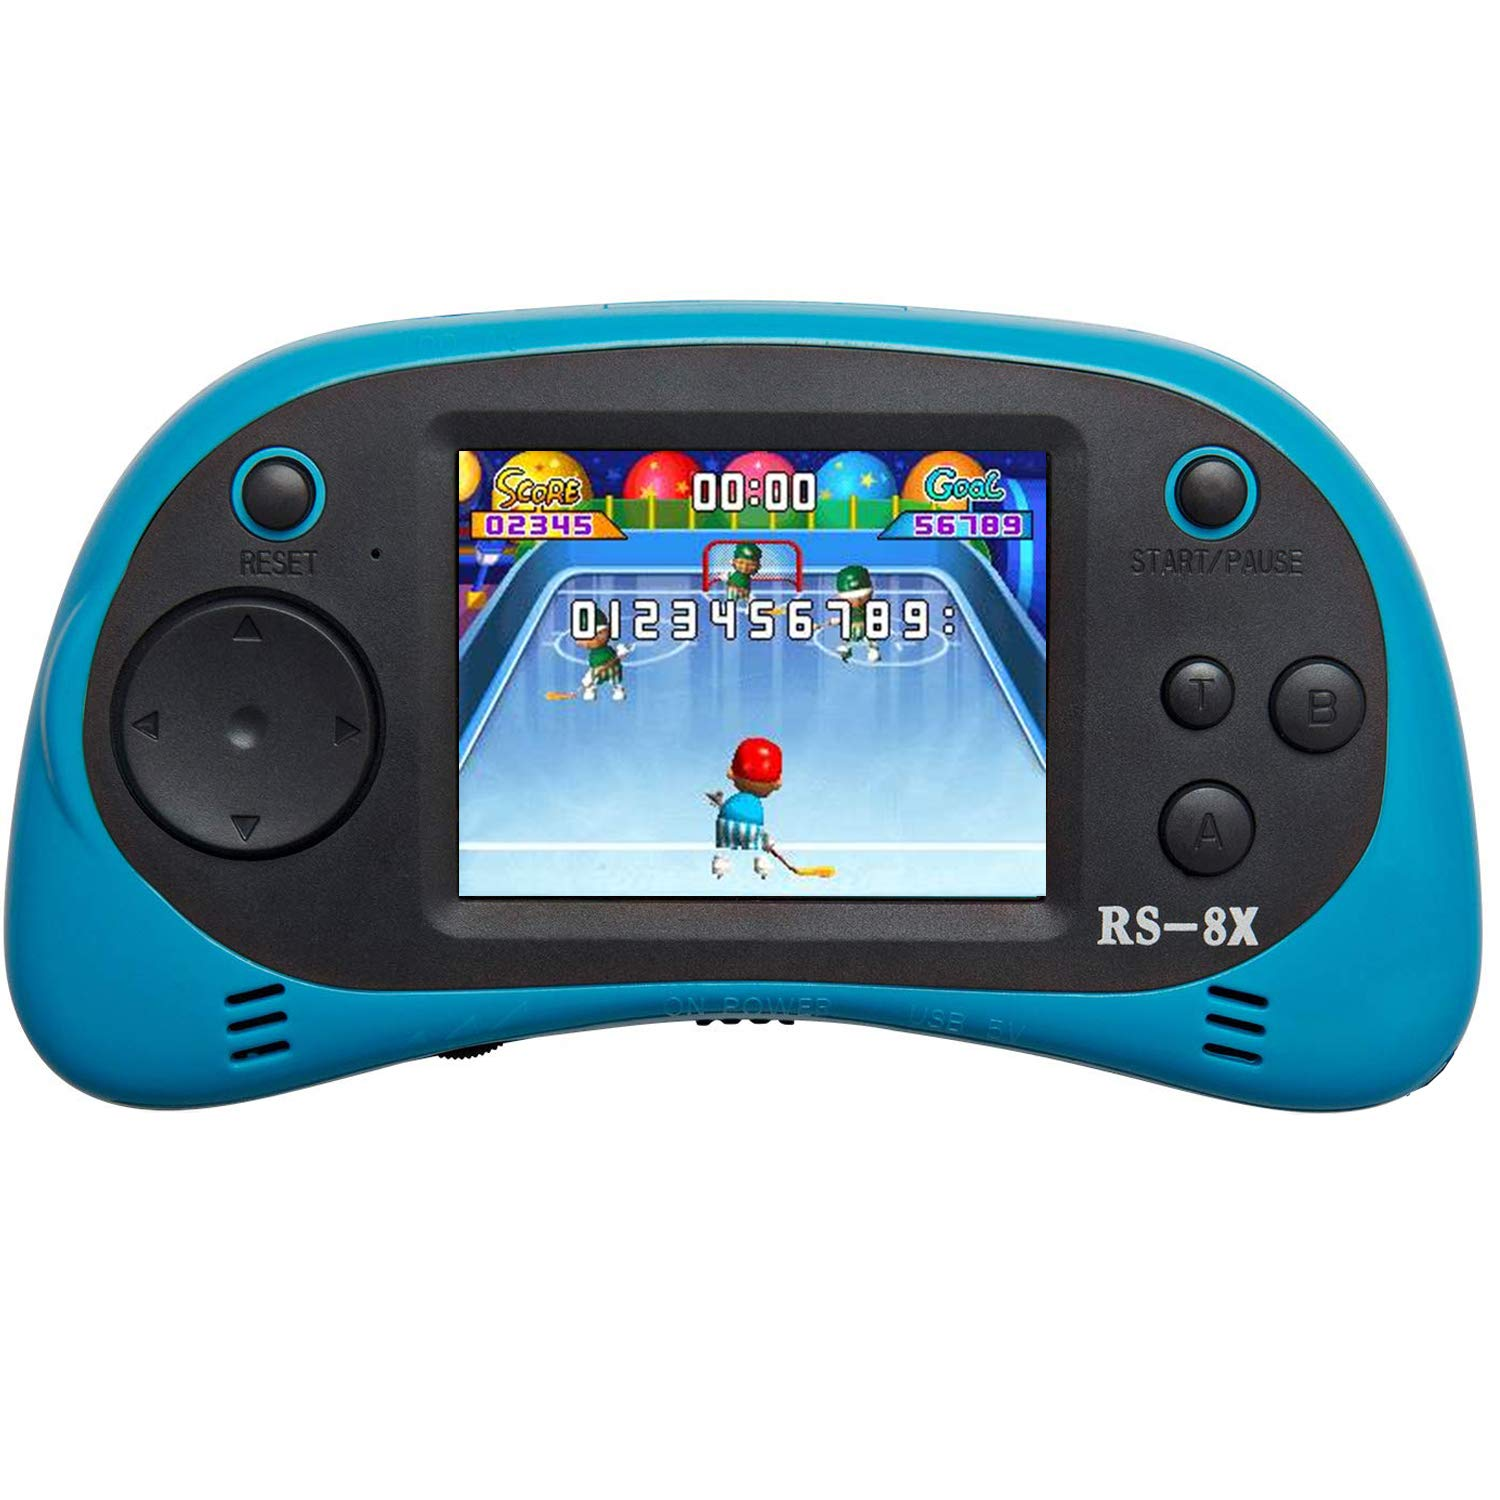 ShinyBoy Retro 16-Bit Handheld Games SB-8X Portable Classic Game Controller Built-in HD Arcade Video Games2.5'' TFT Screen Support AV Output Family Recreation Gaming System for Kids Adults -BLUE by ShinyBoy